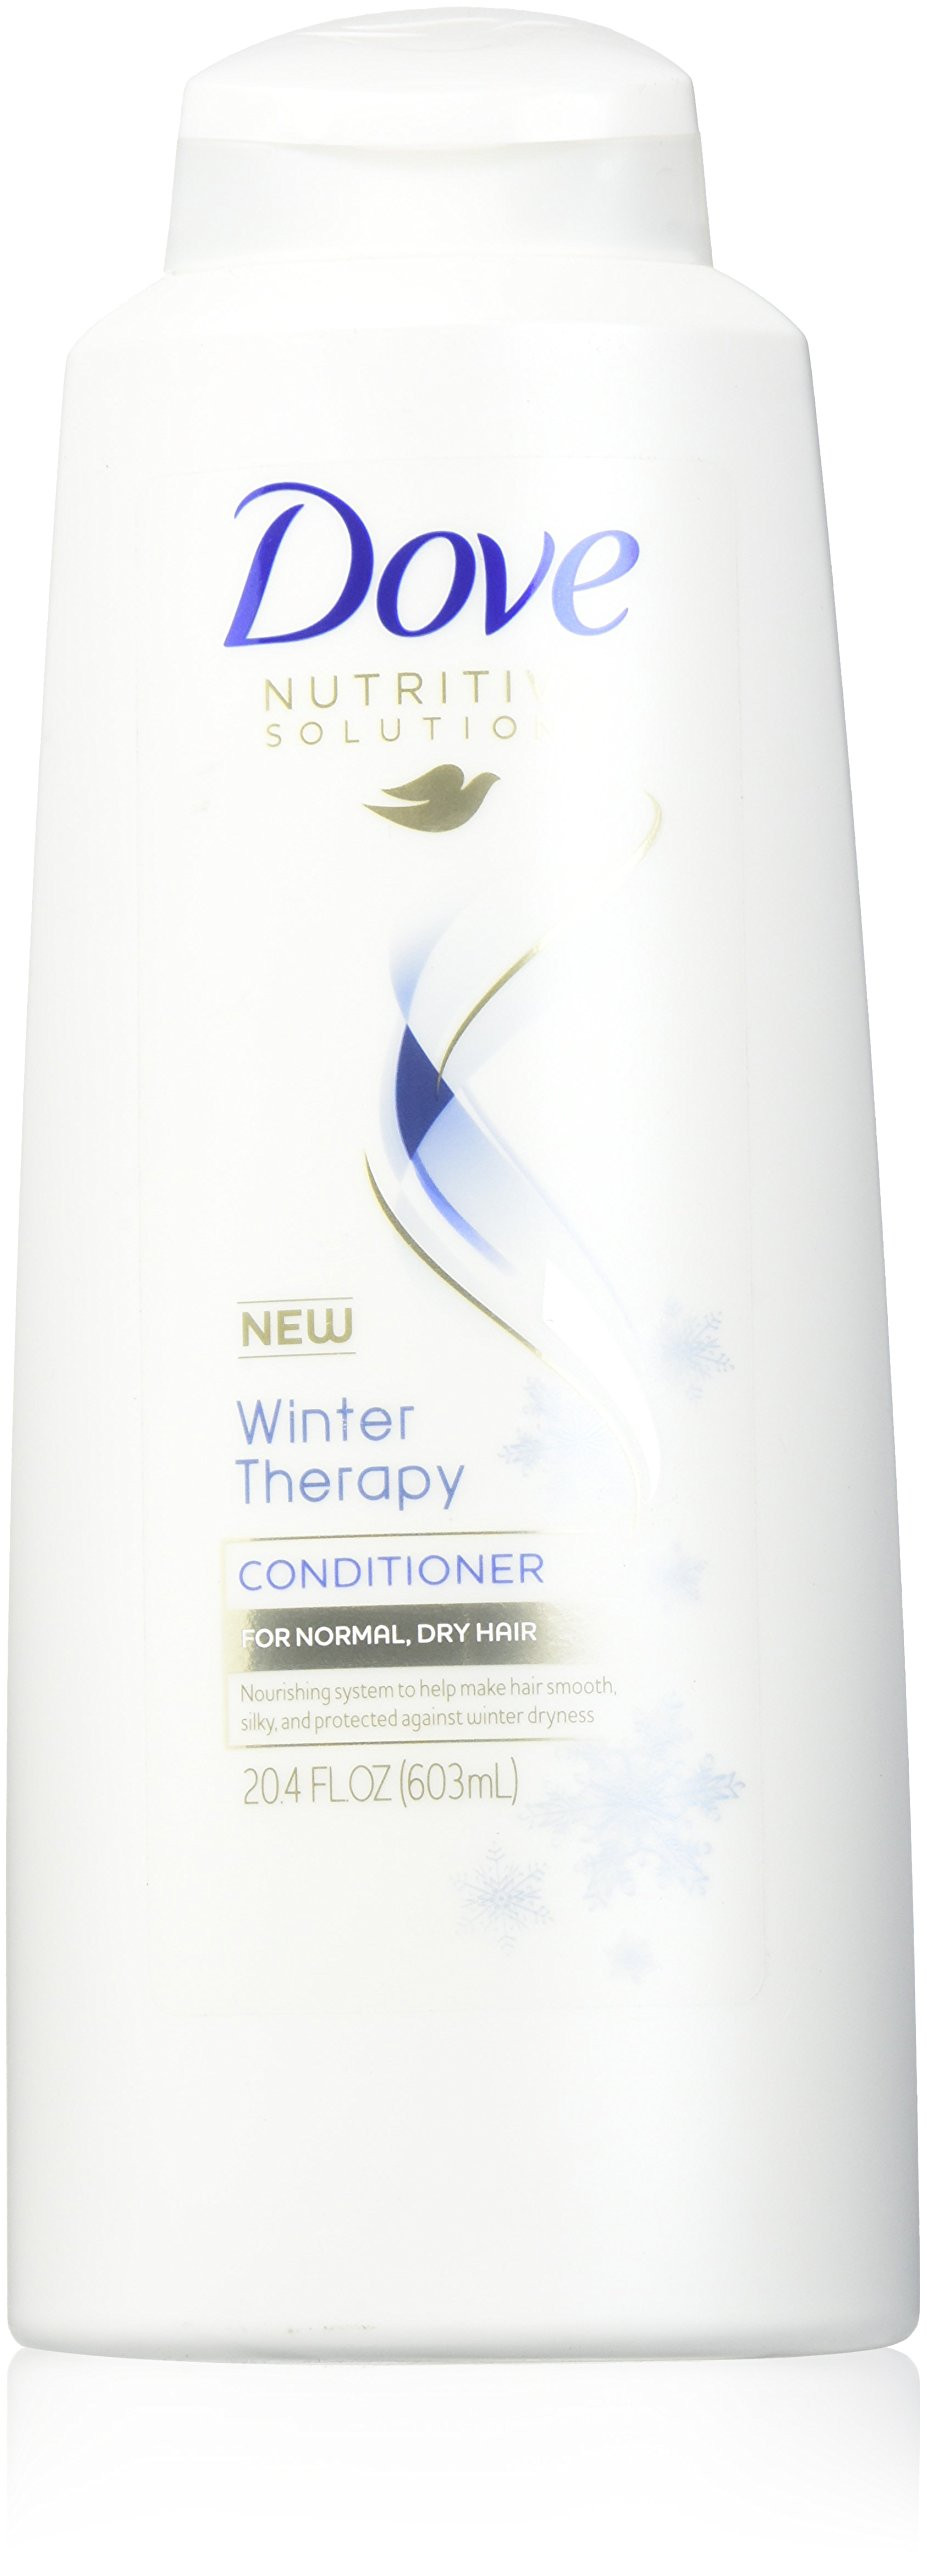 Dove Dry Hair Conditioner Winter Therapy, 20.4 Ounce